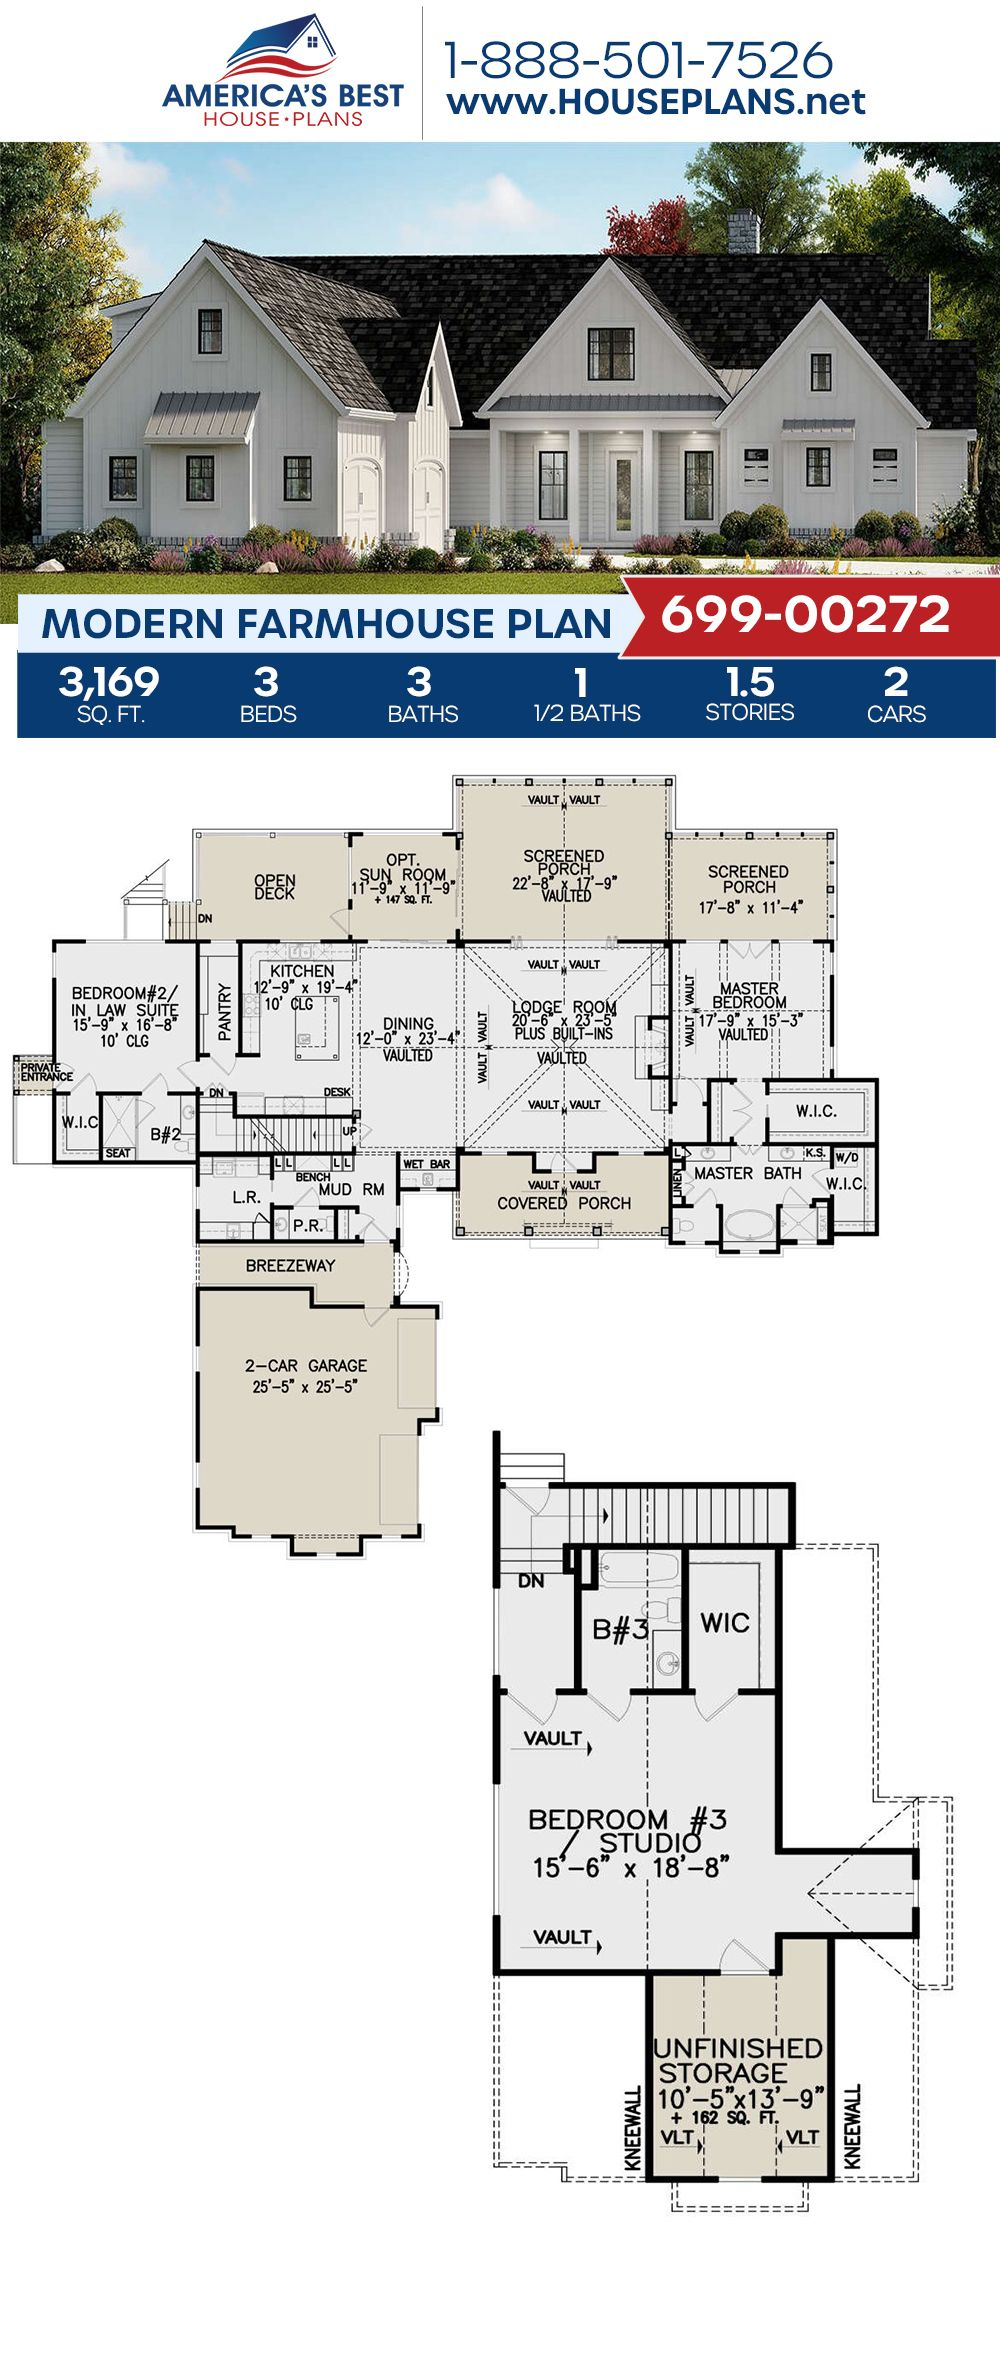 House Plan 699 00272 Modern Farmhouse Plan 3 169 Square Feet 3 Bedrooms 3 5 Bathrooms Modern Farmhouse Plans Farmhouse Plans Pool House Plans